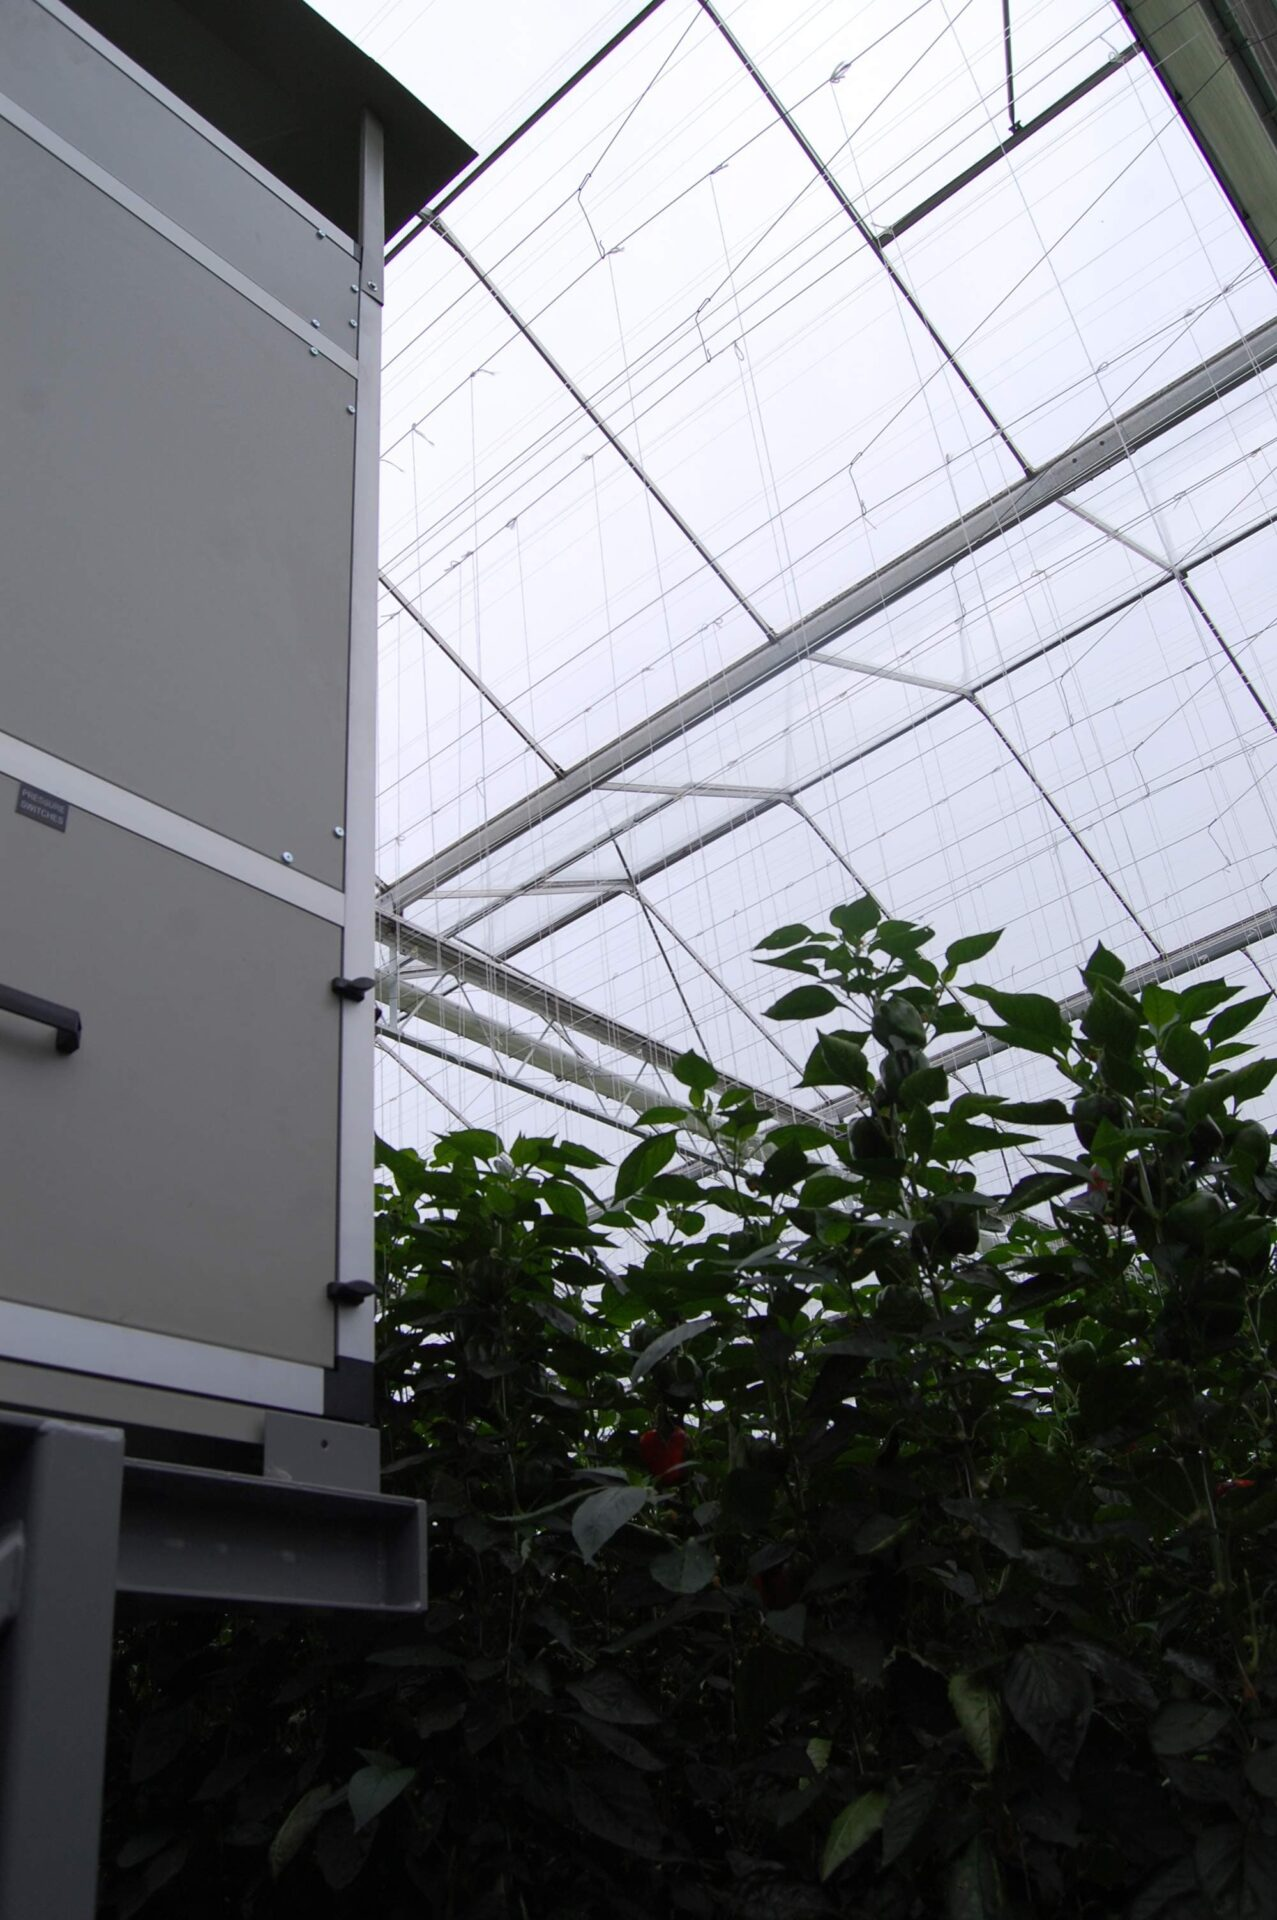 dehumidifier with plants